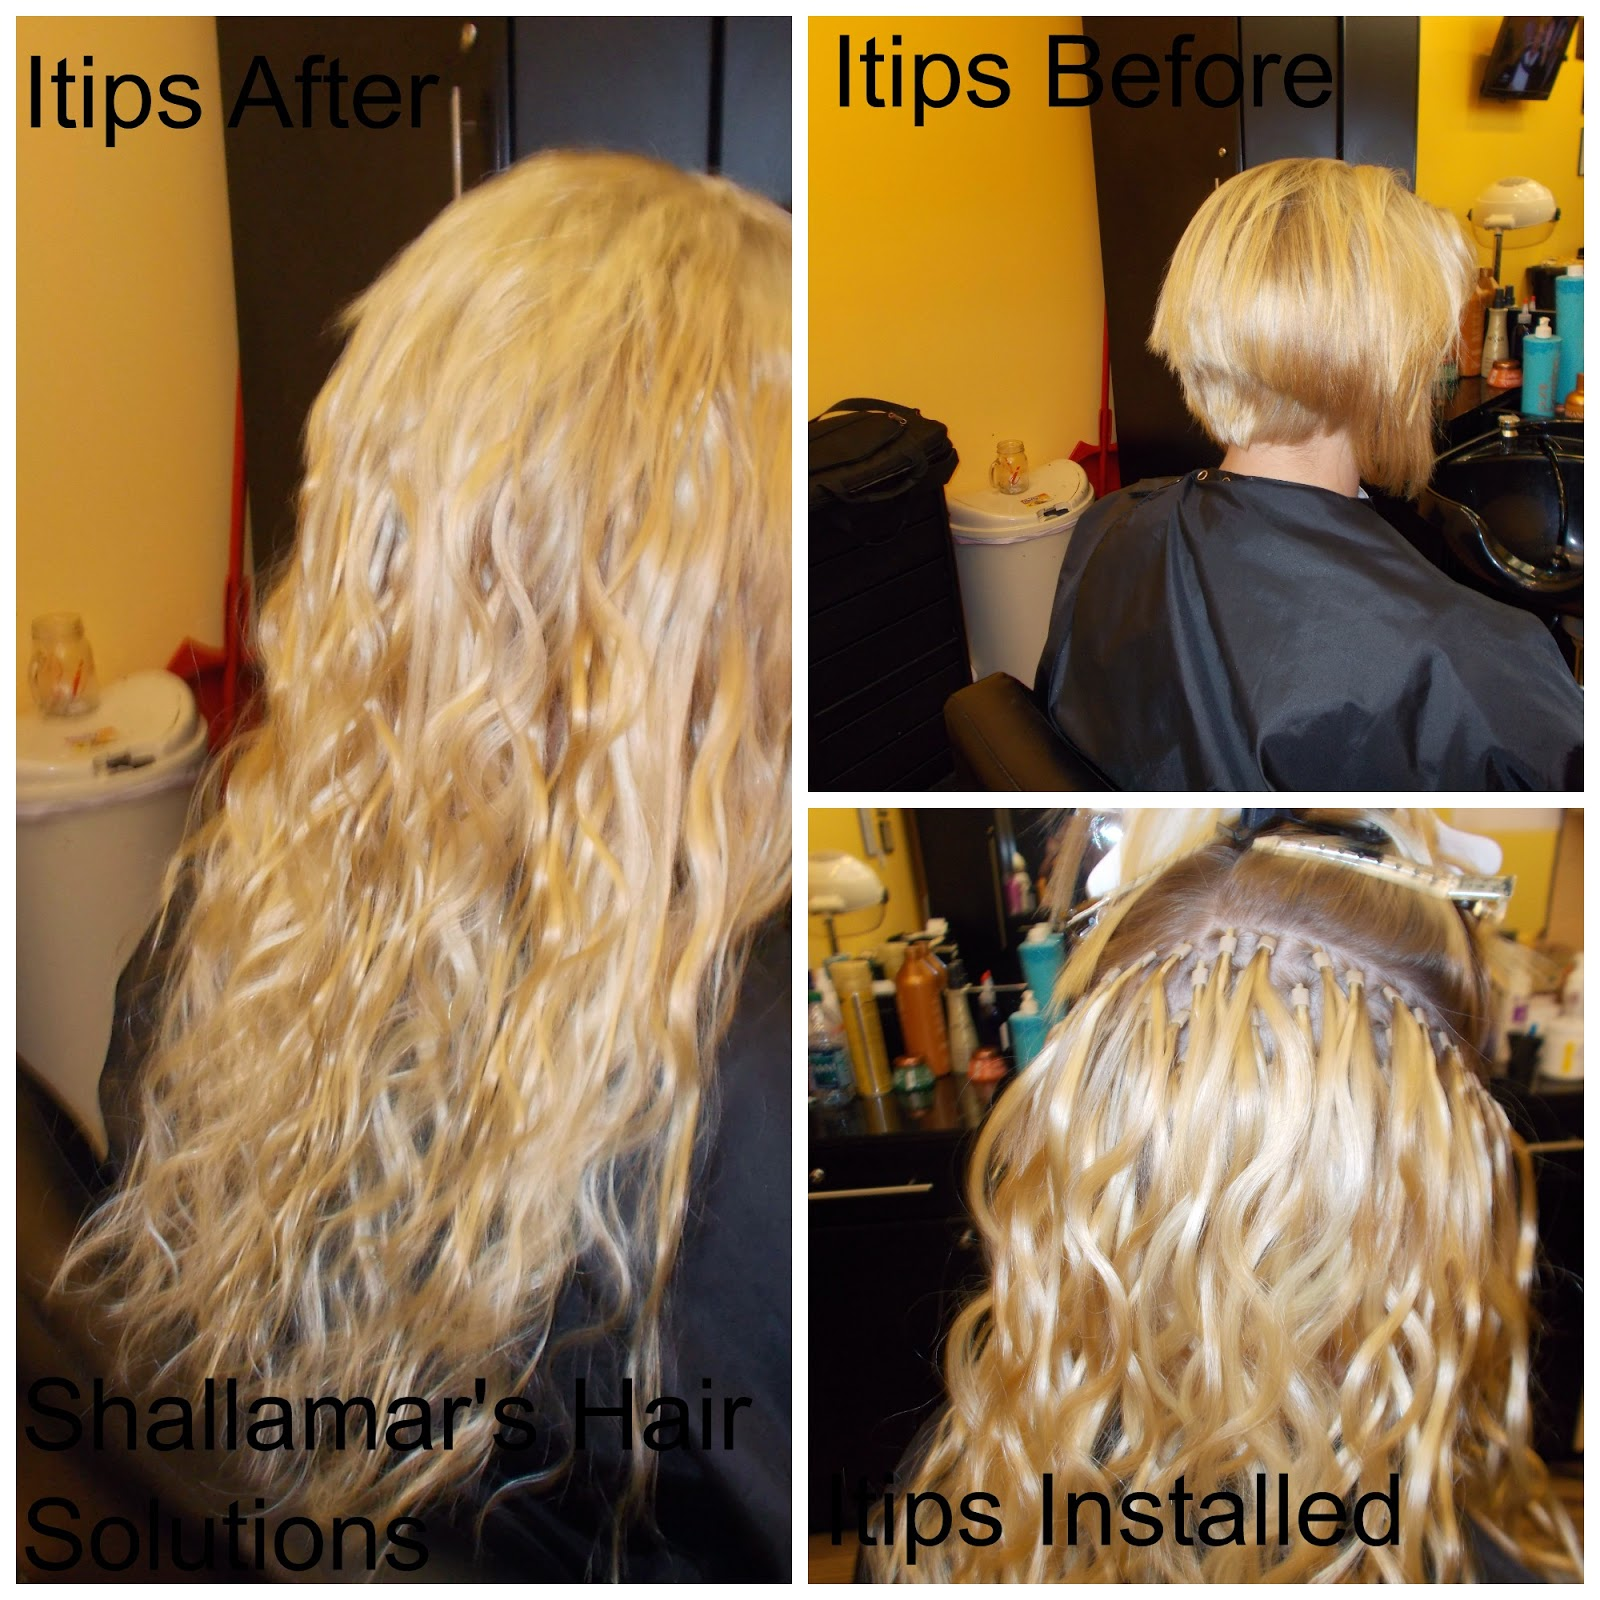 Hair Replacement Orlando April 2015